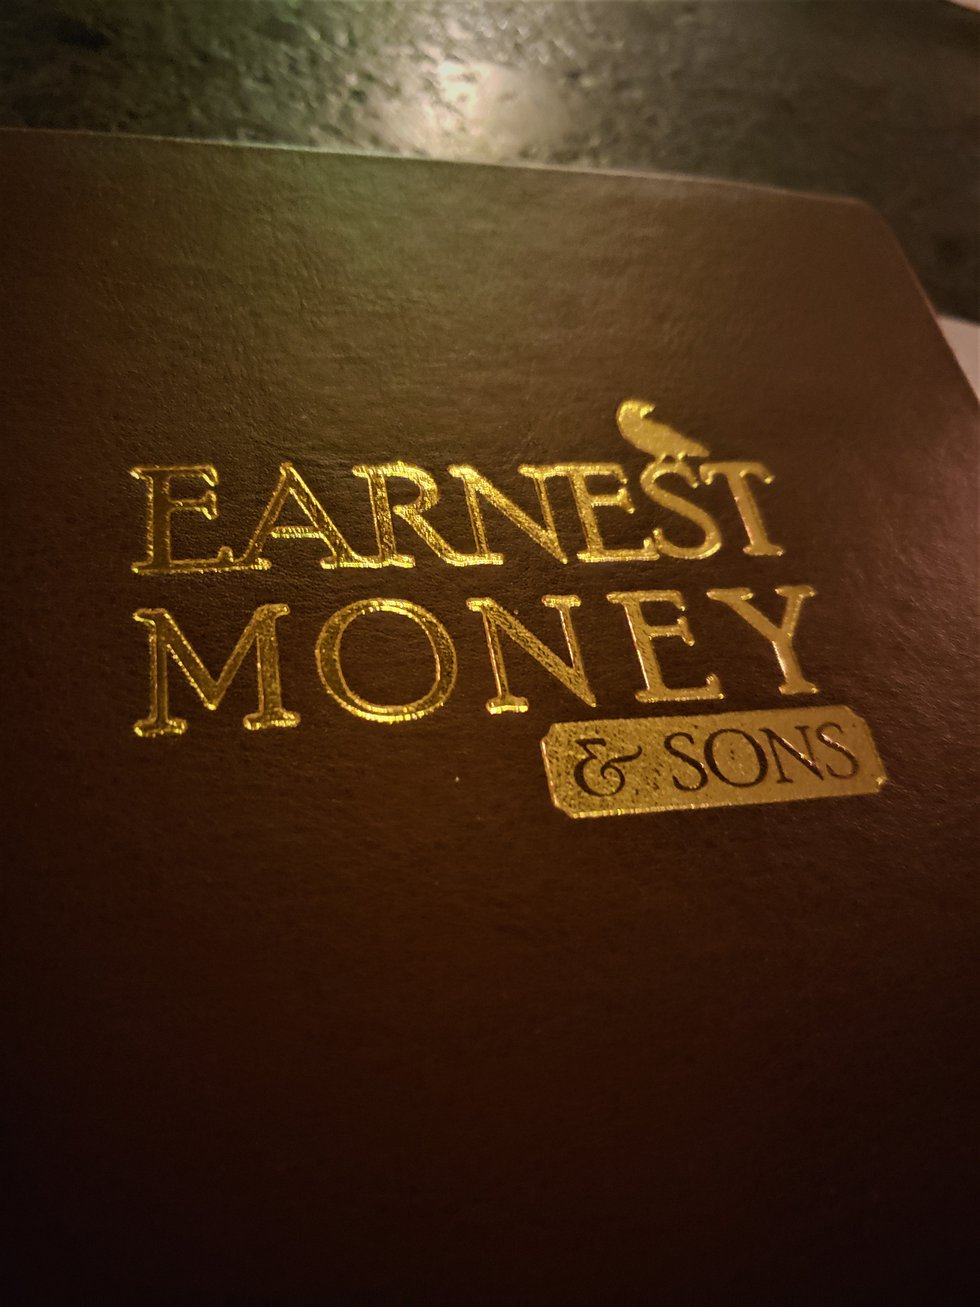 The perfect place for cocktail lovers in the Cape Fear, Earnest Money & Sons can offer a drink...